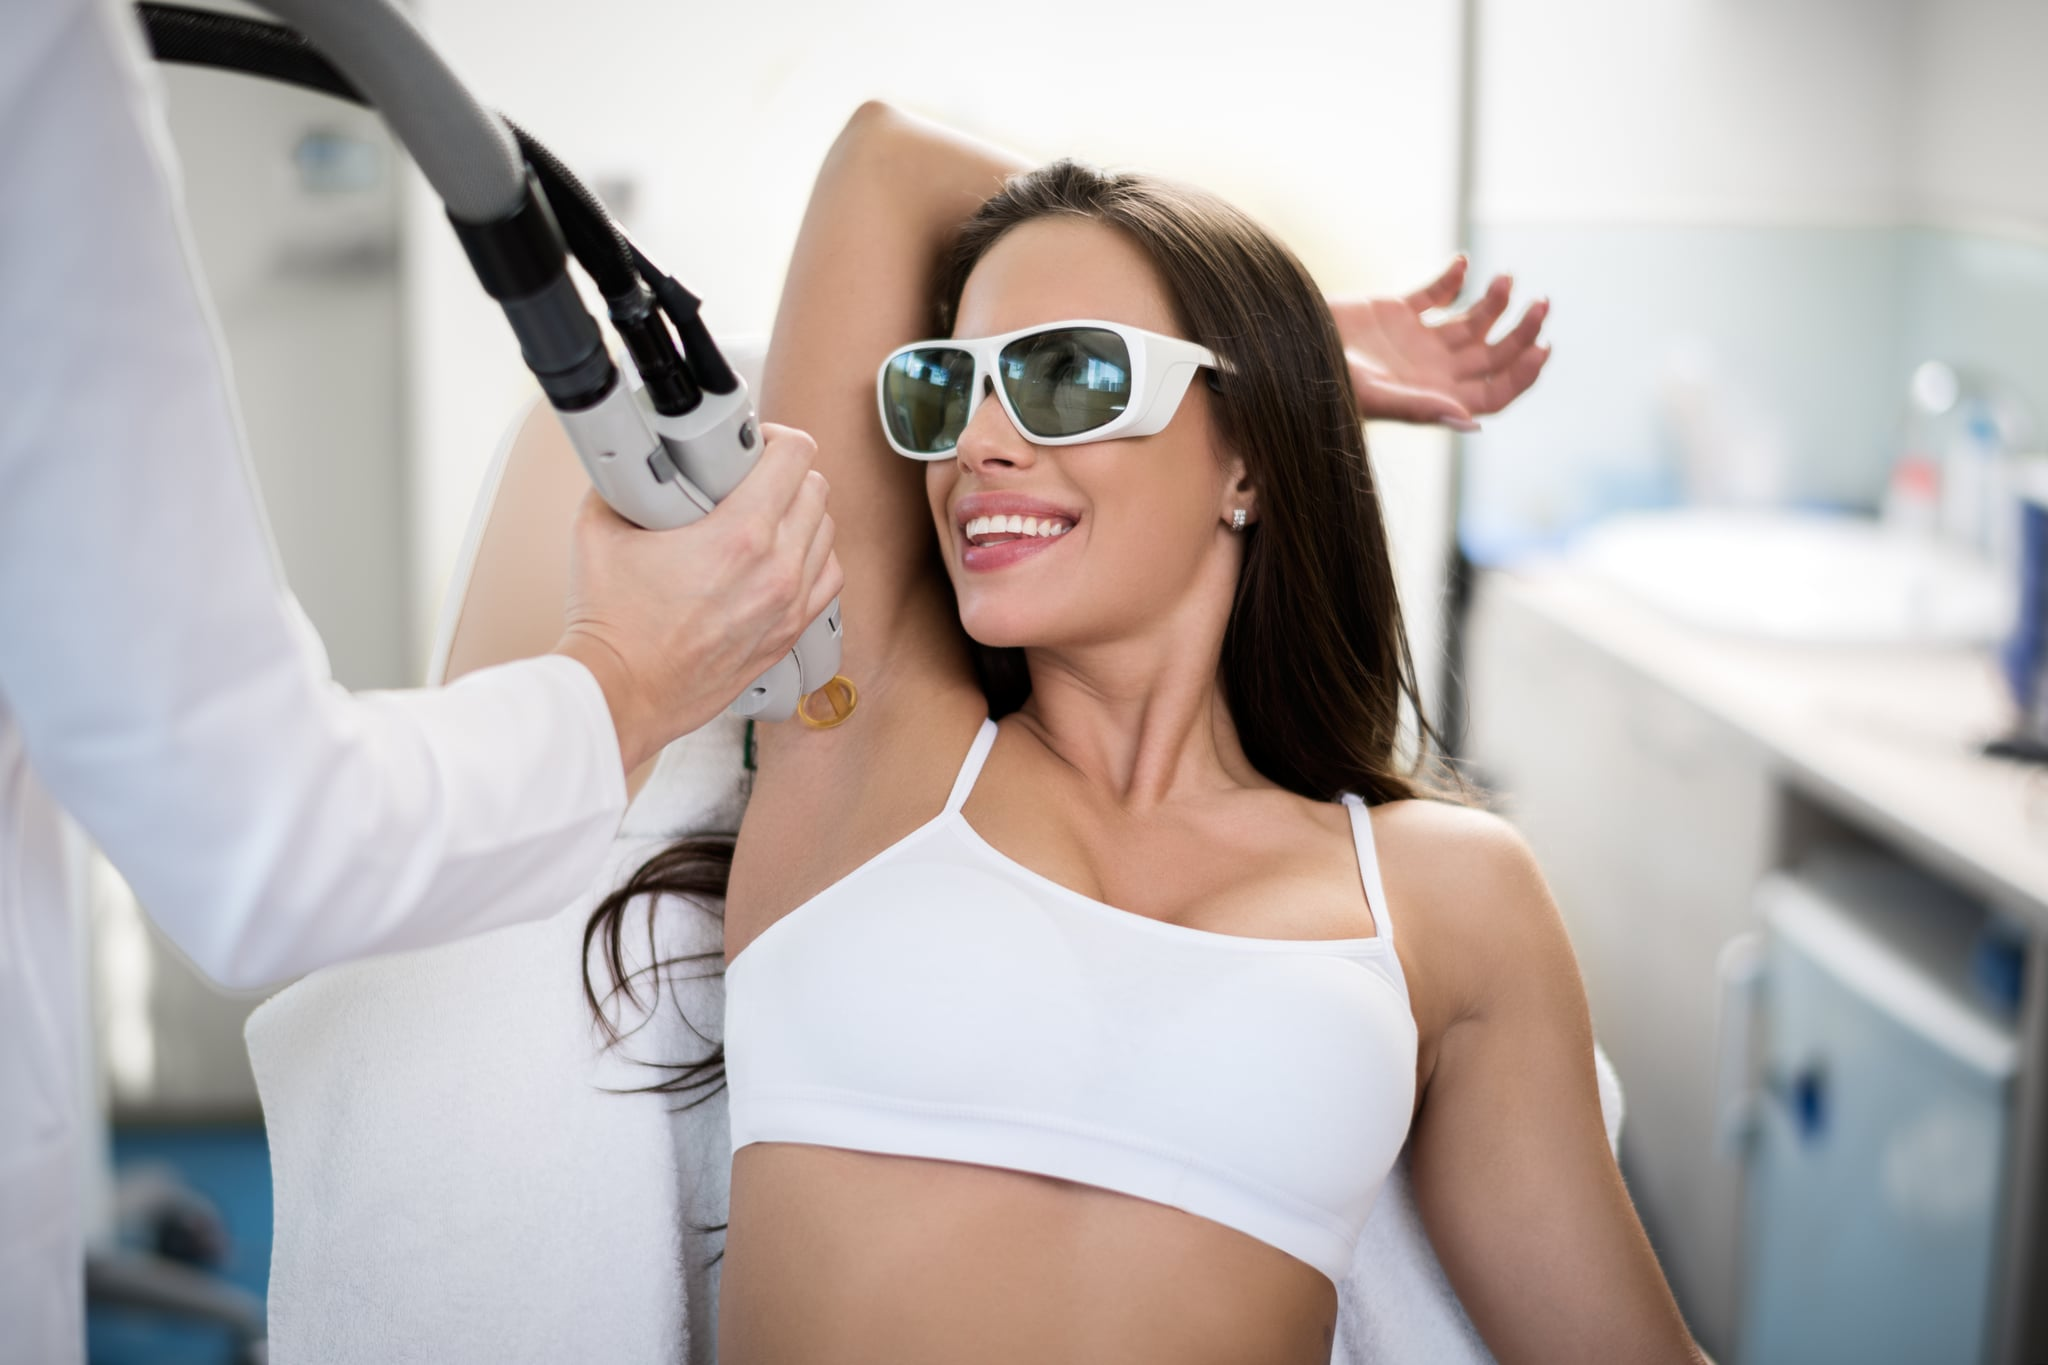 Why Laser Hair Removal is the Best Alternative to Get Rid of Ingrown Hairs